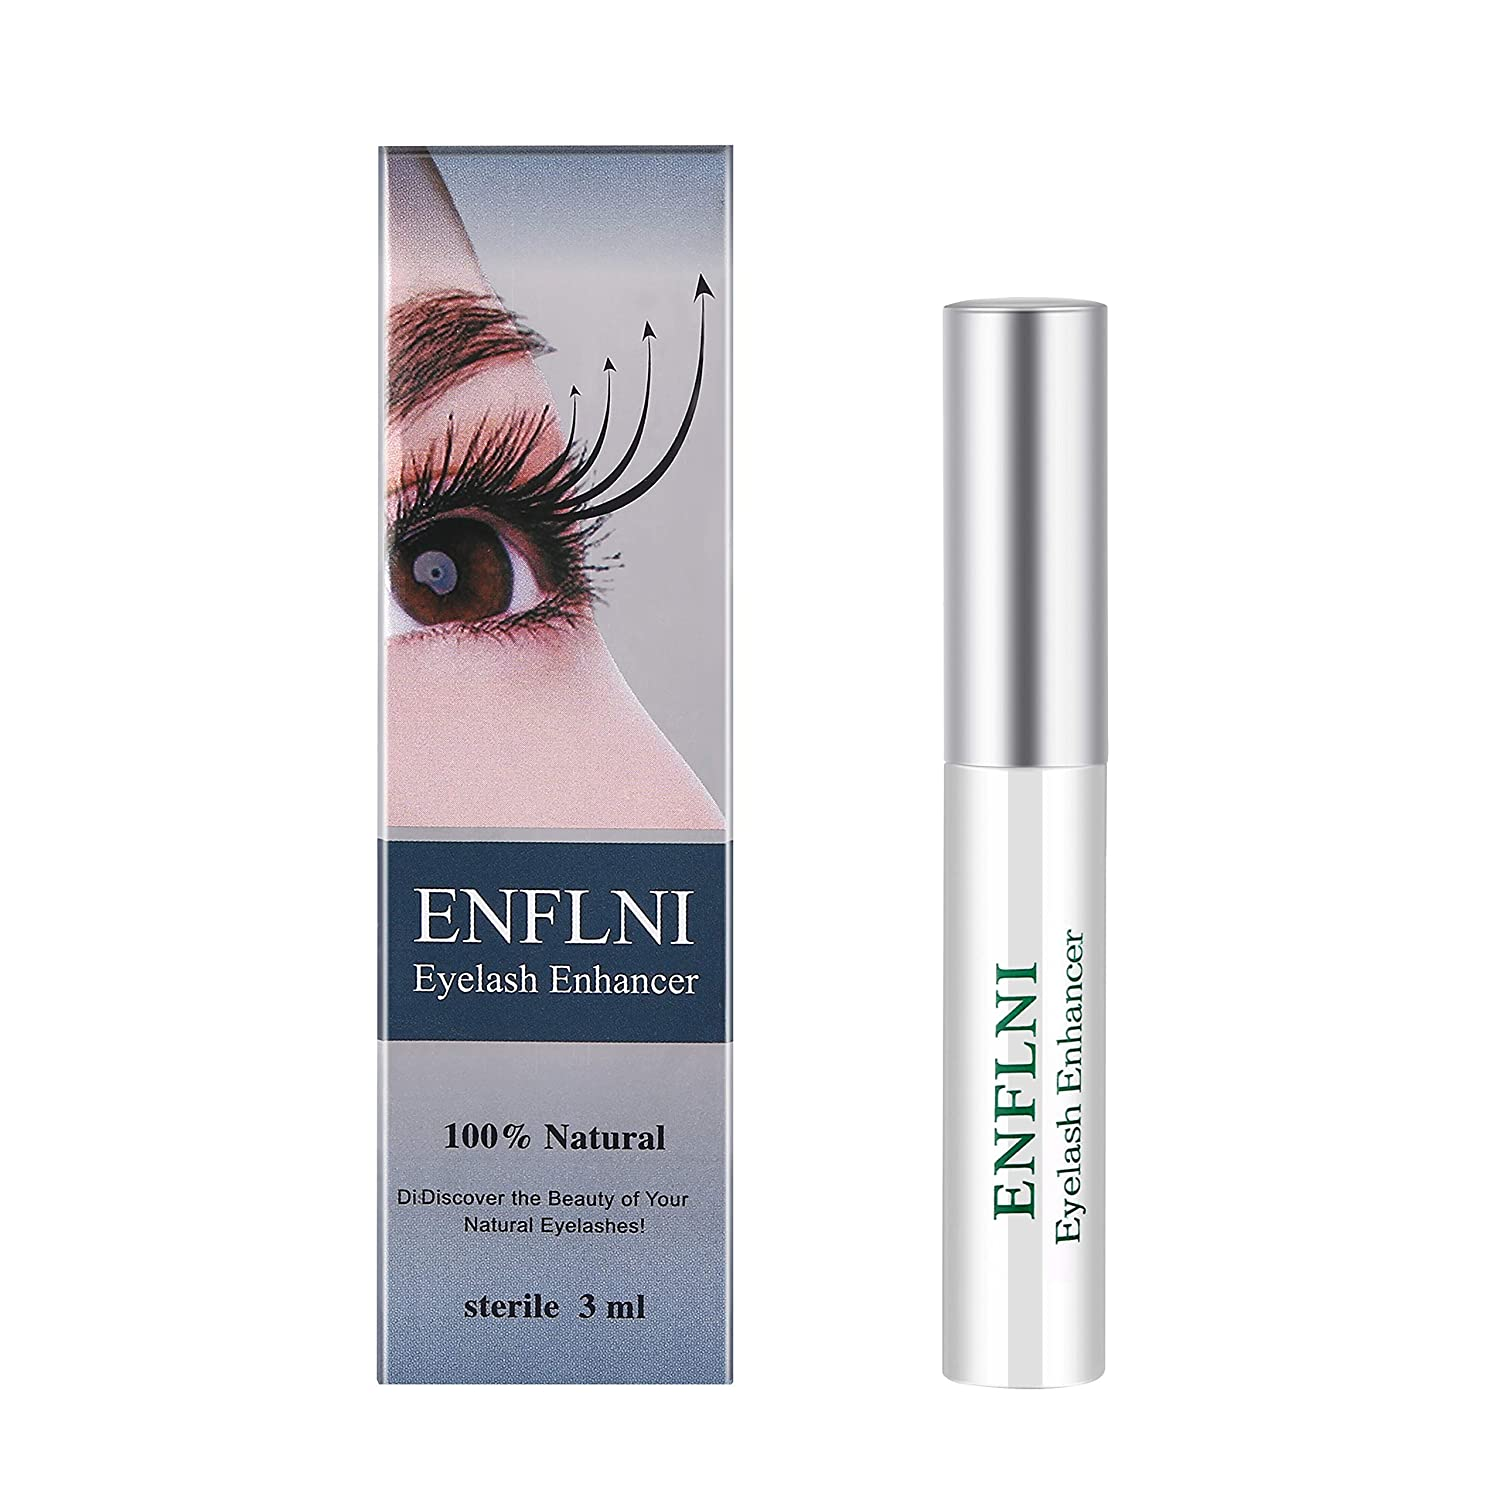 a0d0b391c86 Amazon.com: Eyelash Enhancer Eye Lash Rapid Growth Serum Liquid 100%  Original 3ml by ENFLNI: Beauty